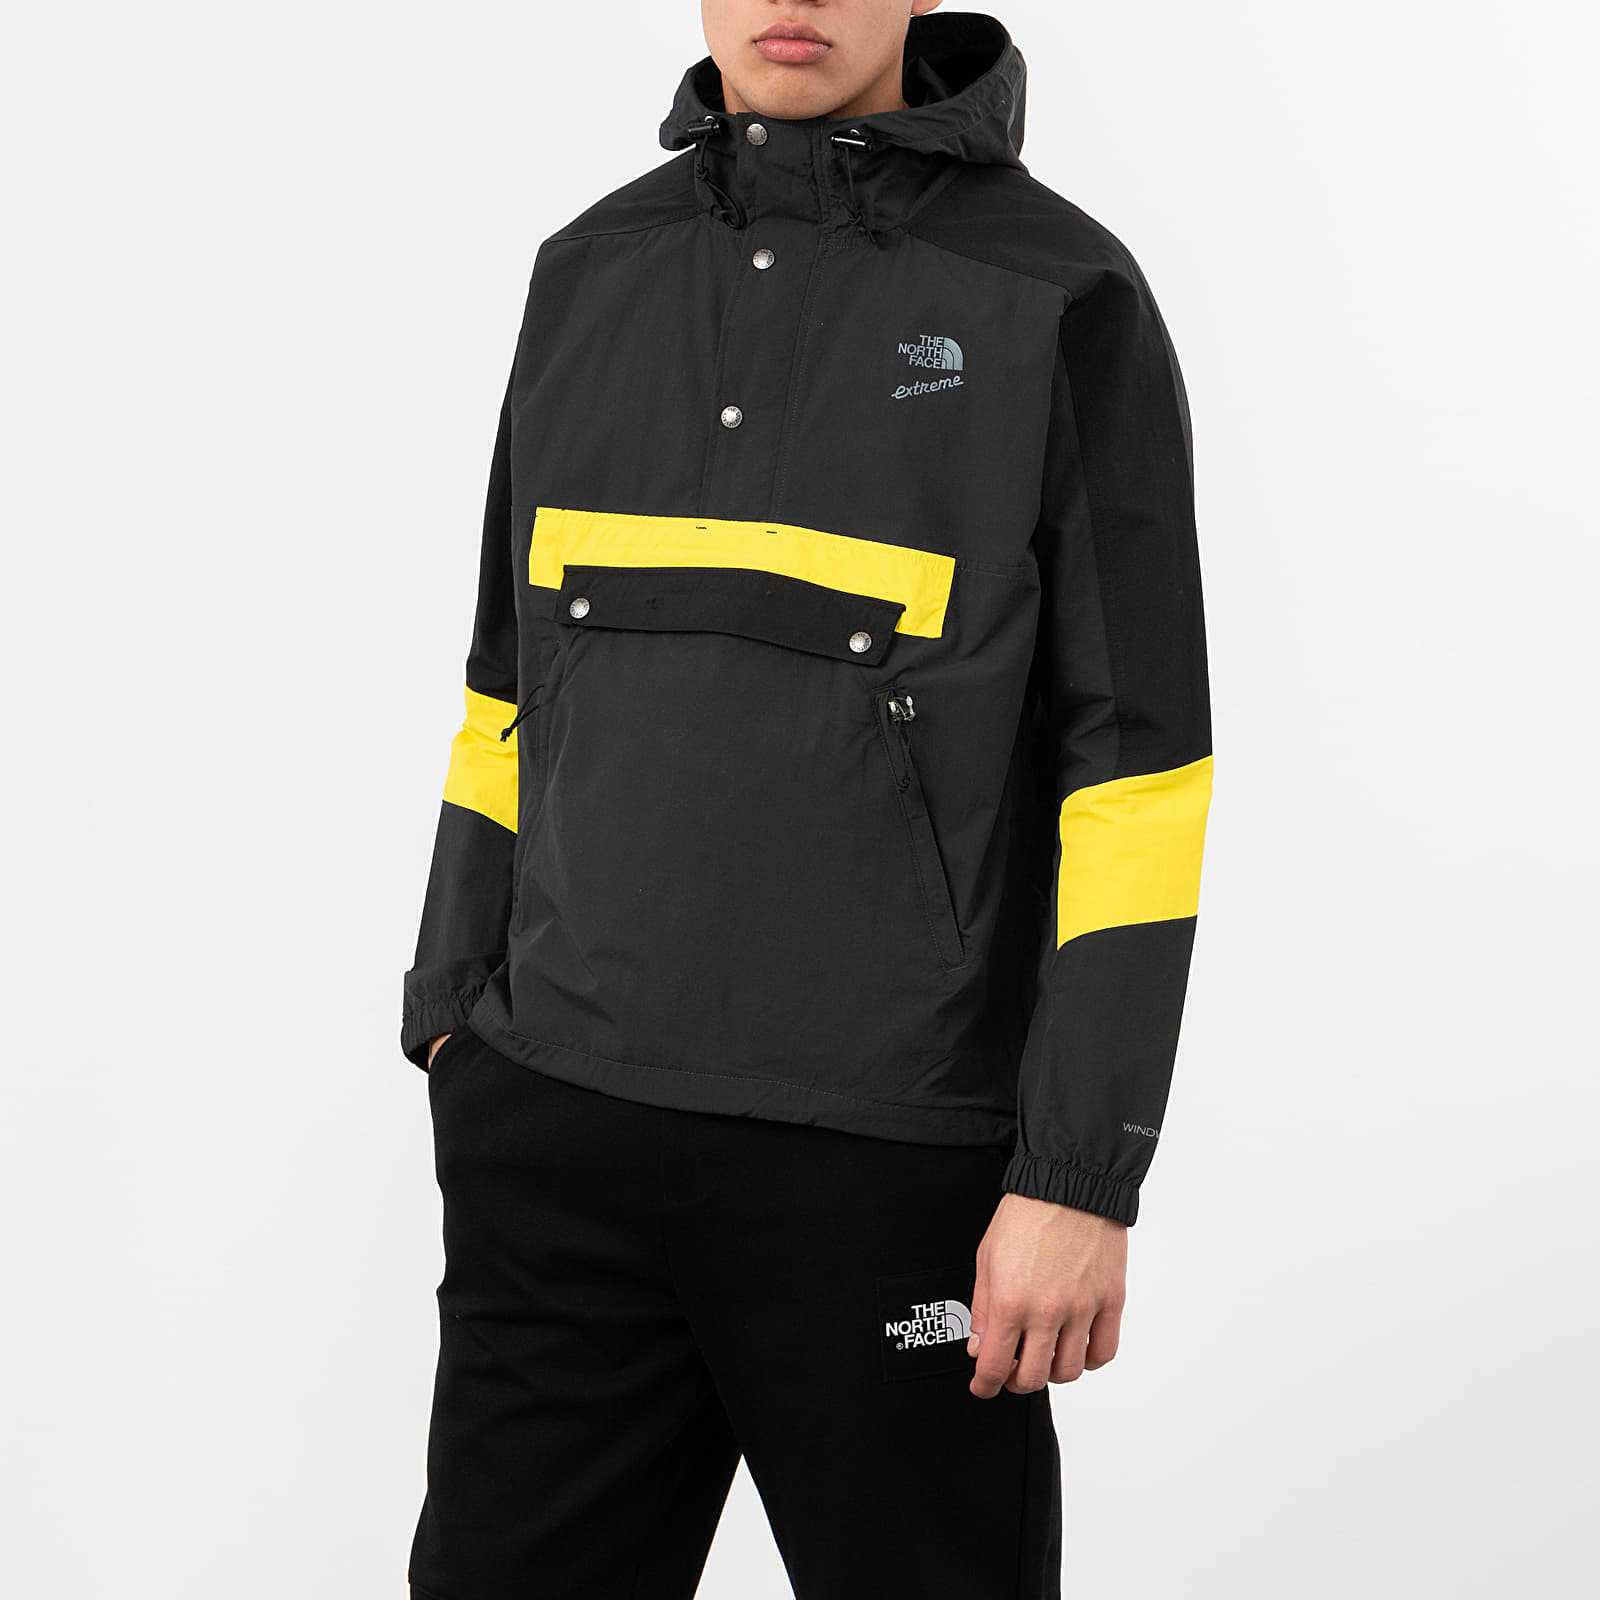 The North Face Extreme Wind Anorak Jacket